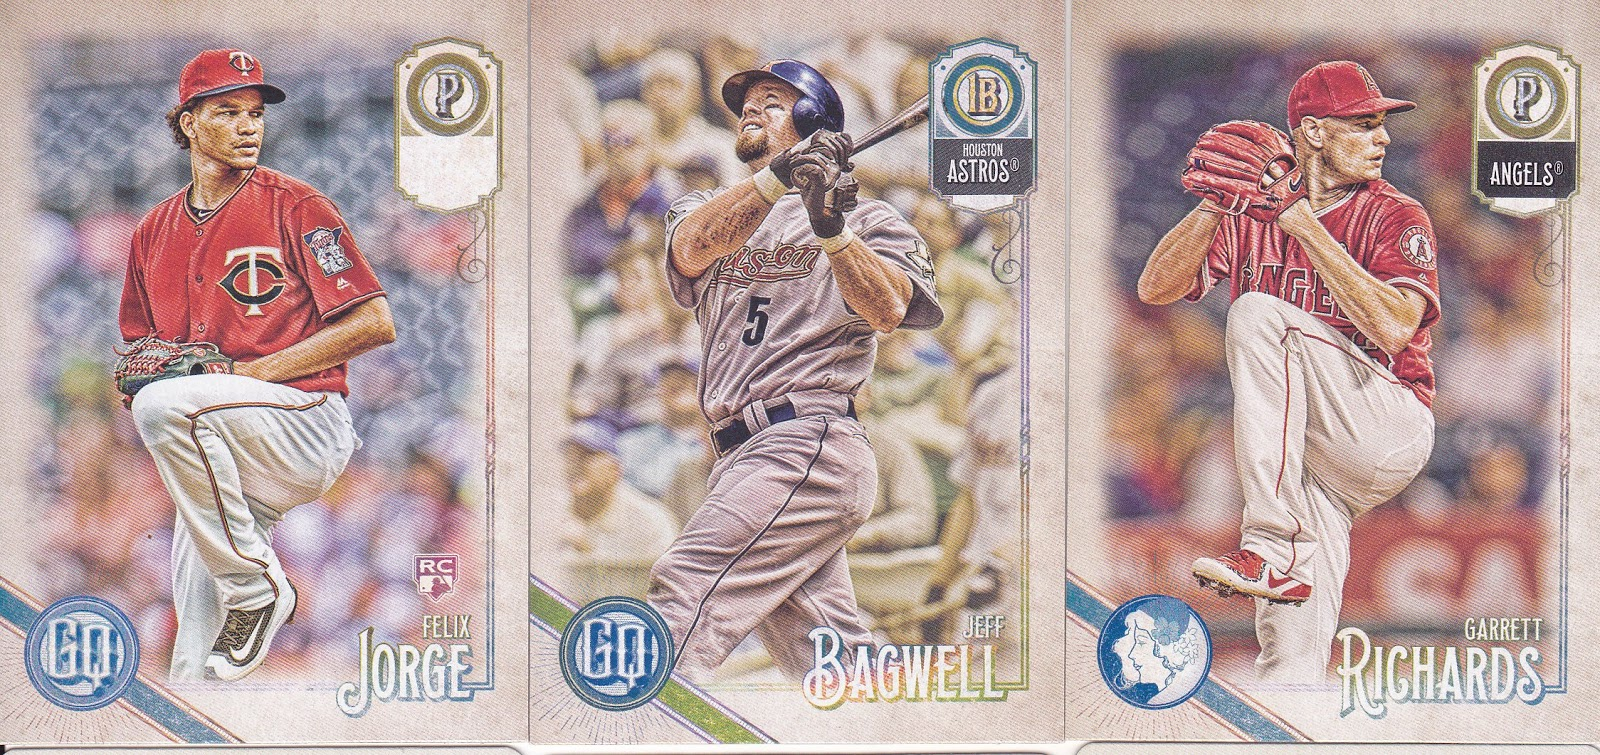 2018 Topps Gypsy Queen Baseball Autographs Inserts